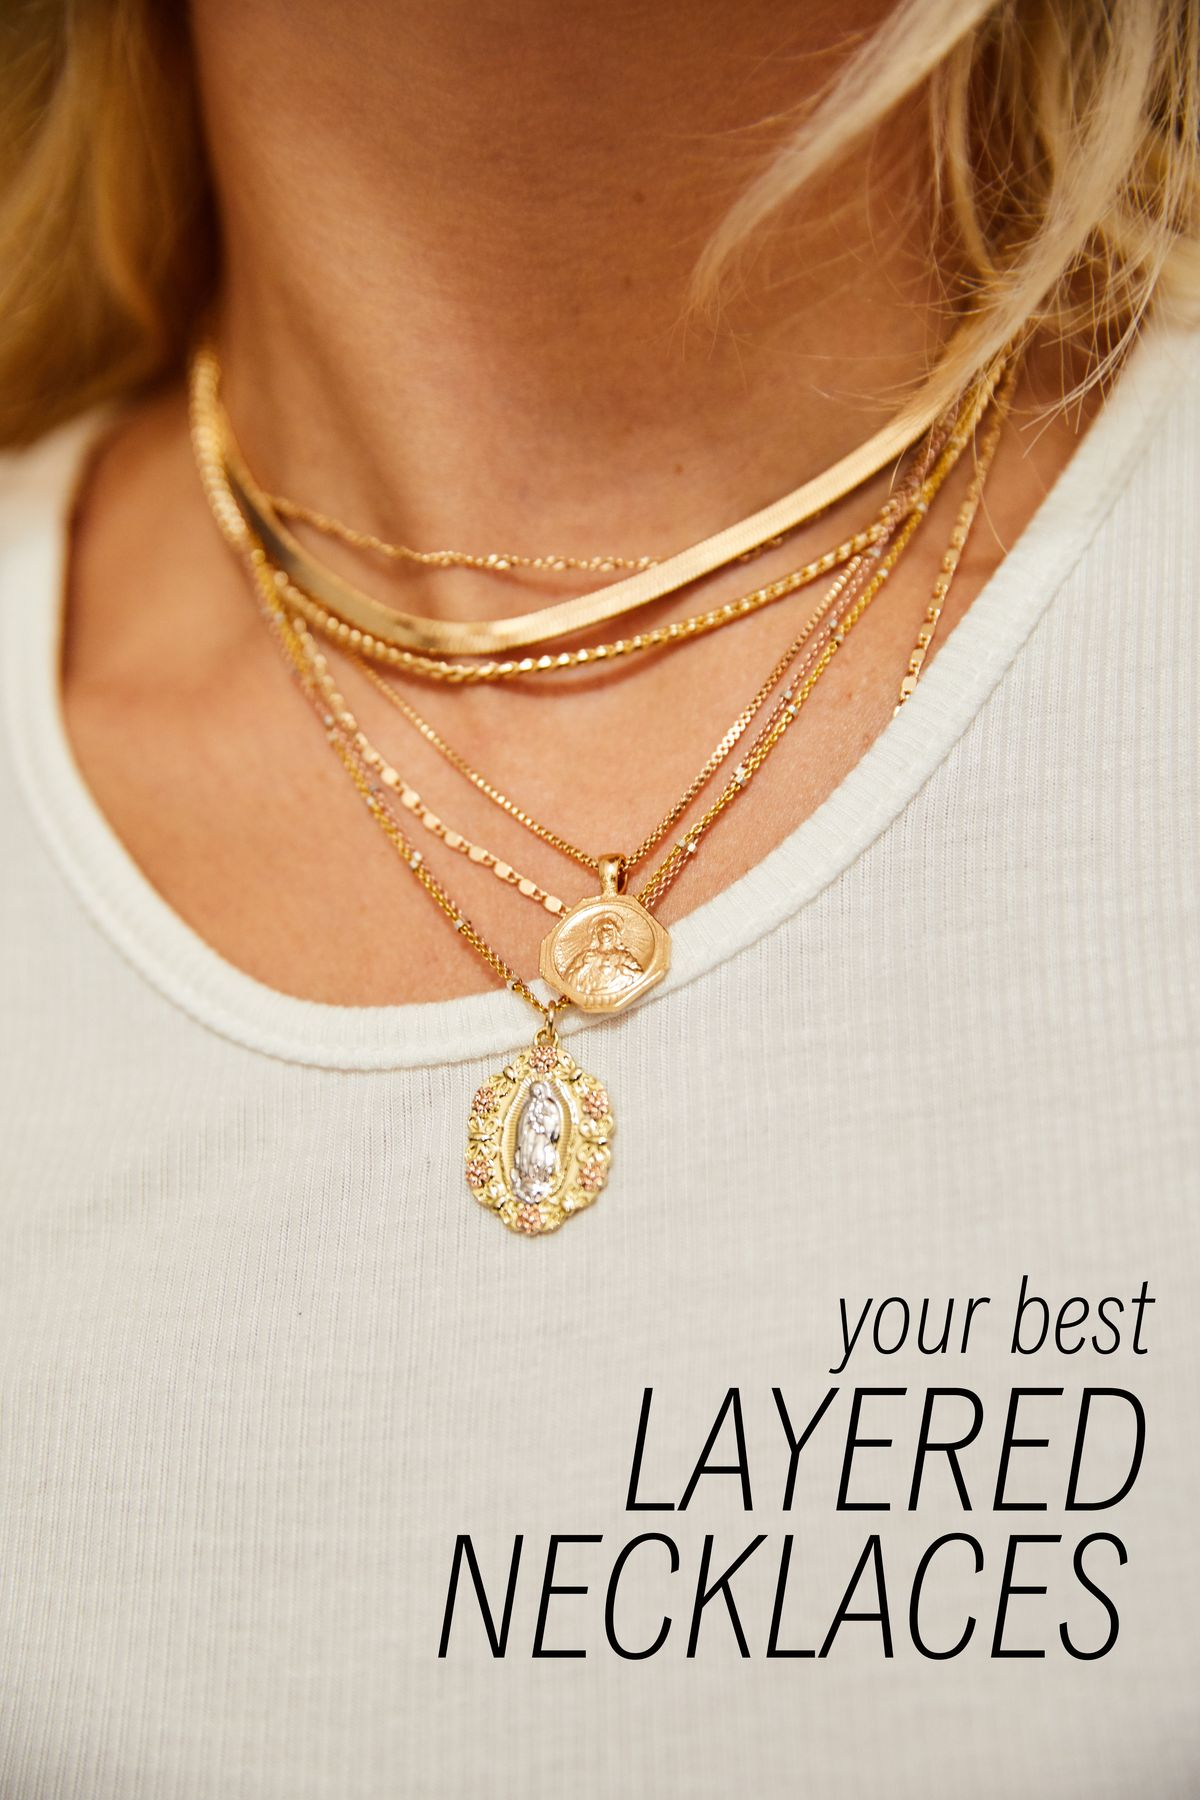 Your Best Layered Necklaces